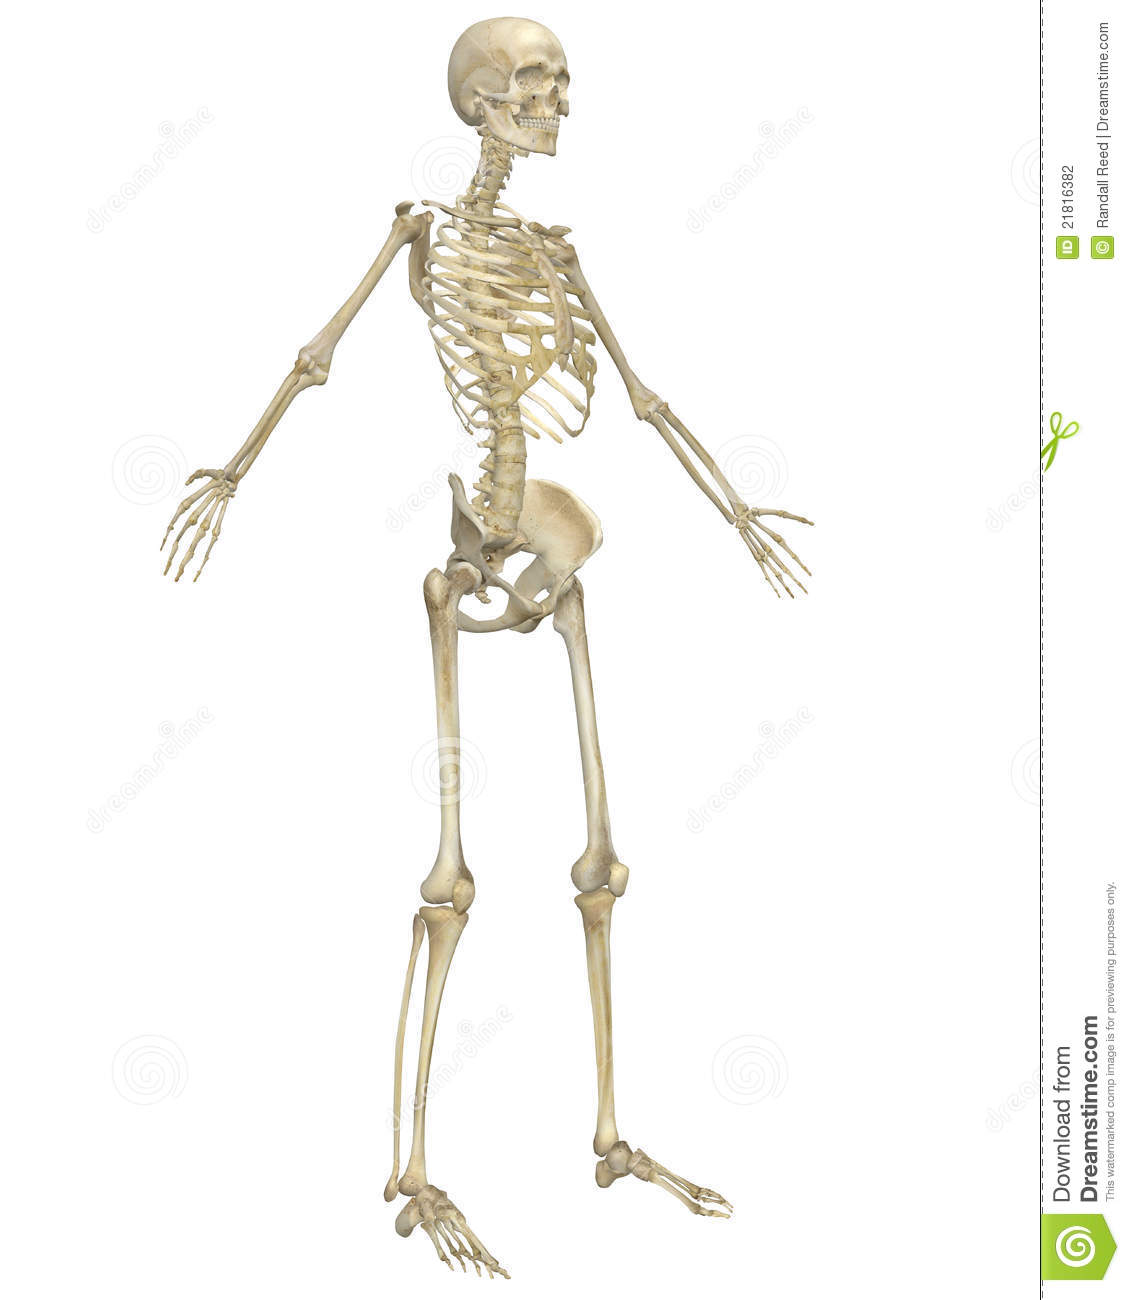 Human Skeleton Anatomy Angled Front View Stock Illustration